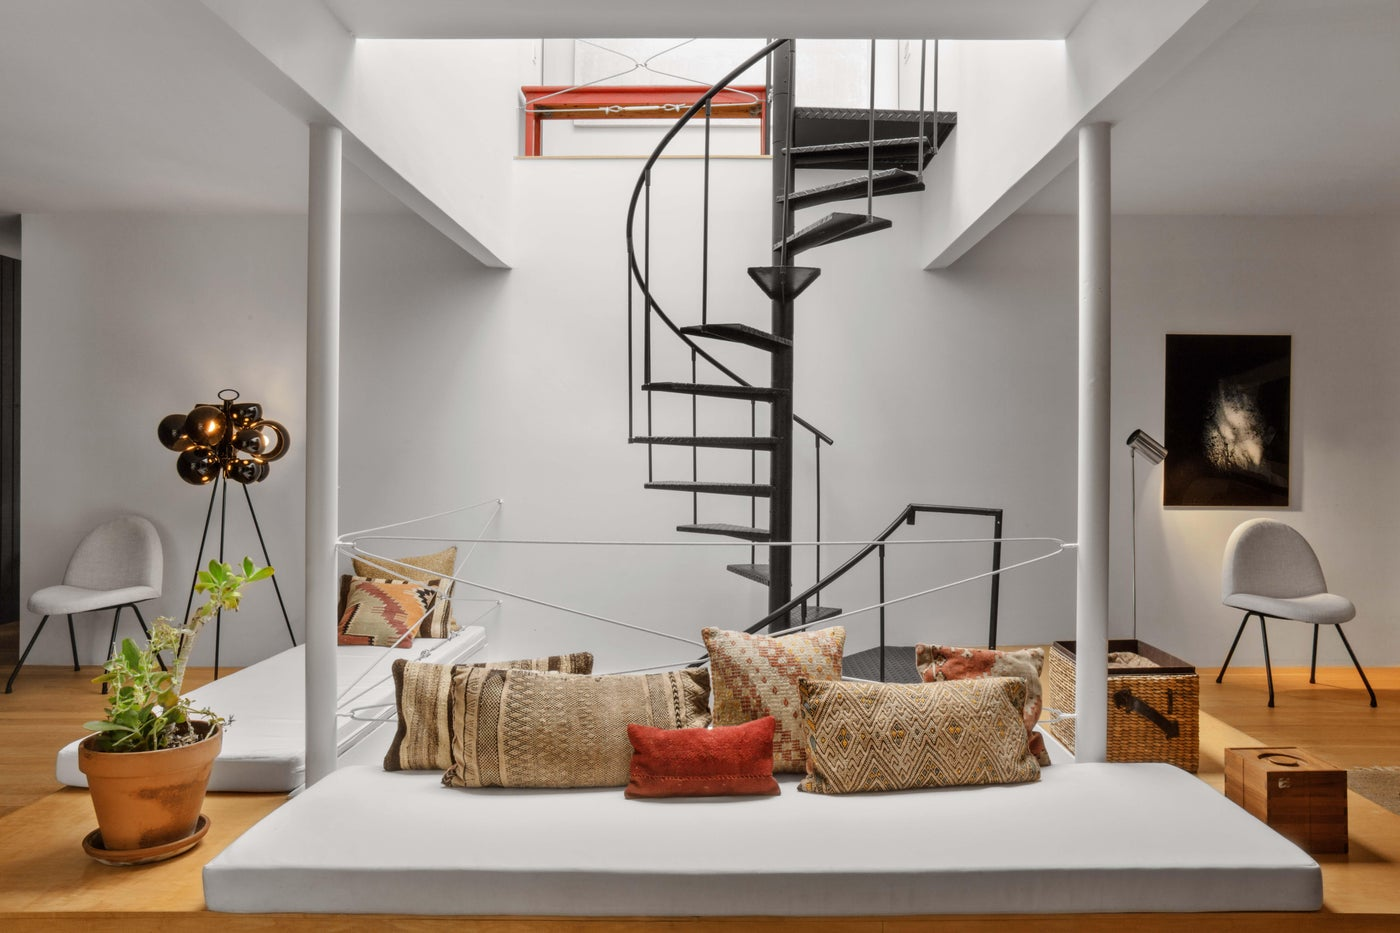 Basement family room with spiral staircase, mid-century pieces in modern space